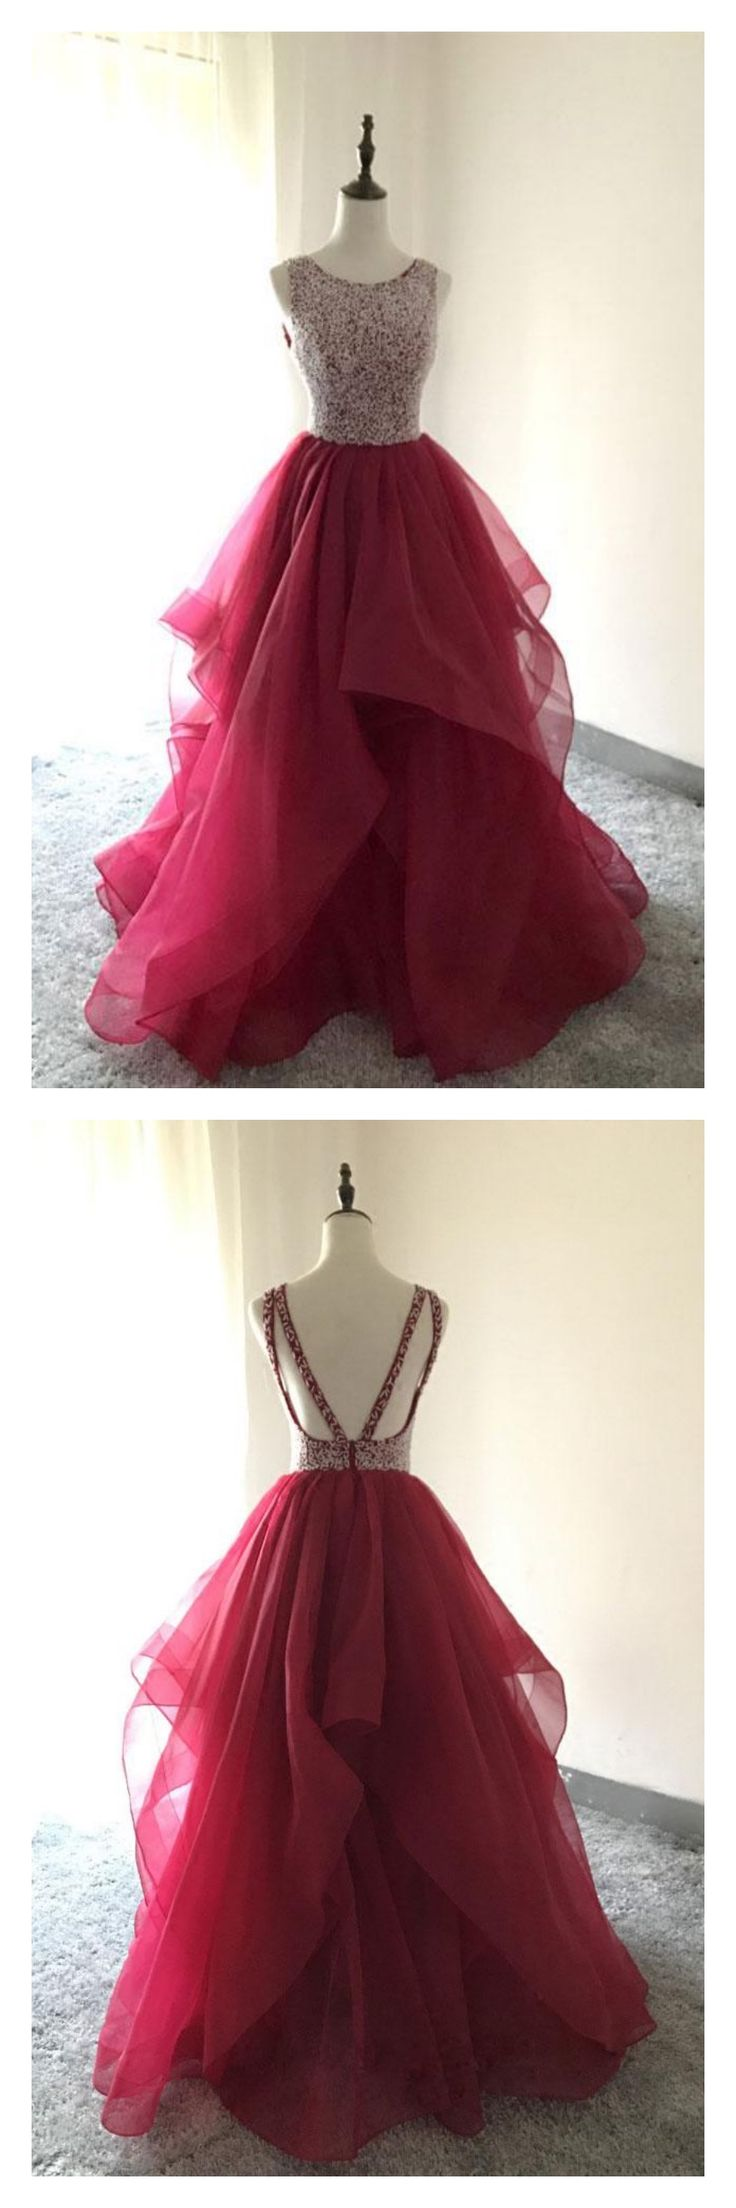 prom dresses 2018, prom dresses 2017, prom dresses long, prom dresses long cheap simple, prom dresses for teen, prom dresses for freshman, prom dresses for juniors, evening gowns, prom dresses long with beaded, prom dresses long sparkly,#SIMIBridal #promdresses